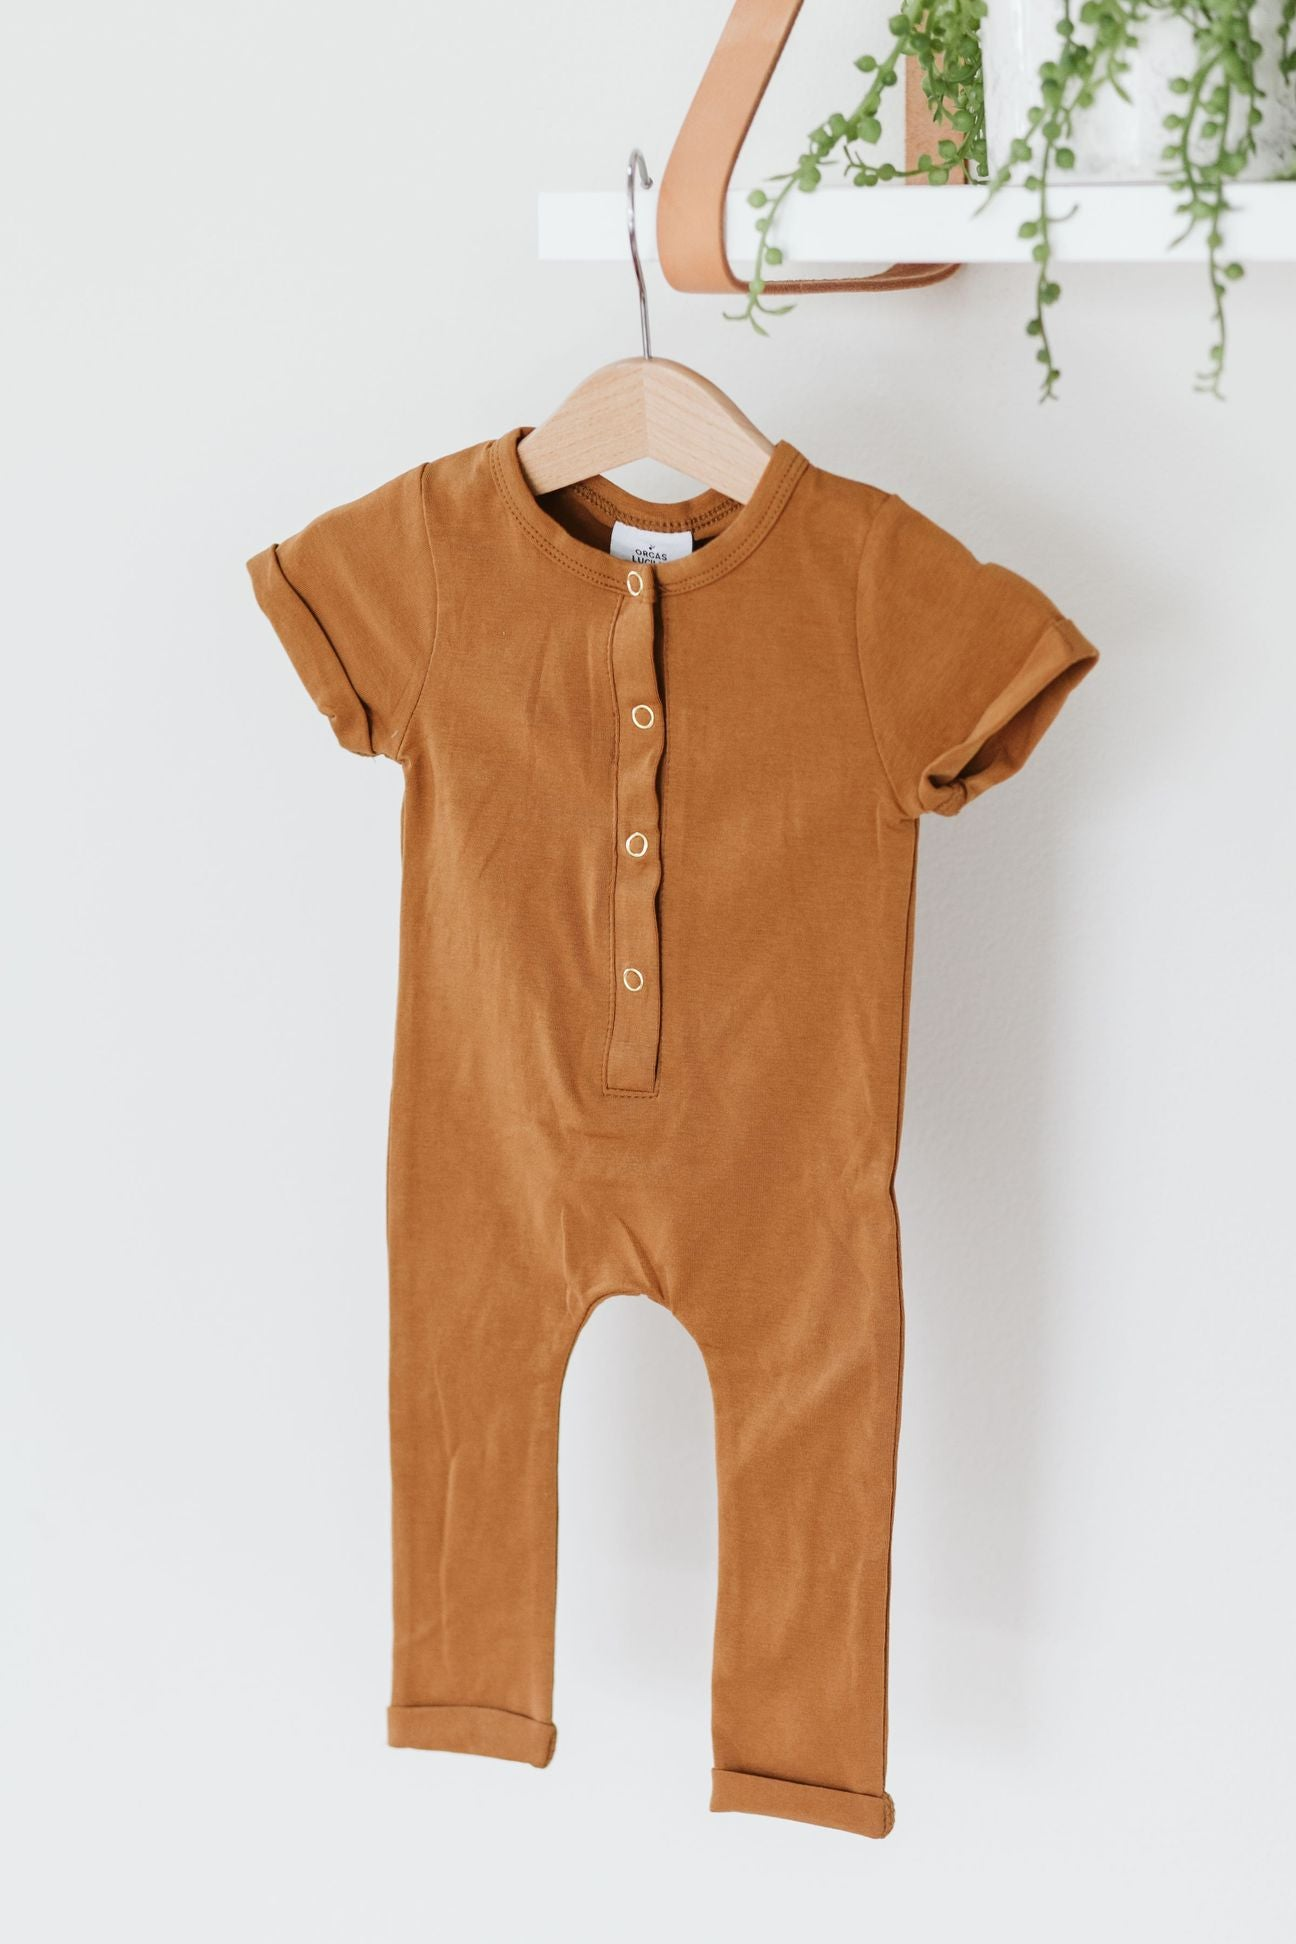 butterscotch henley romper